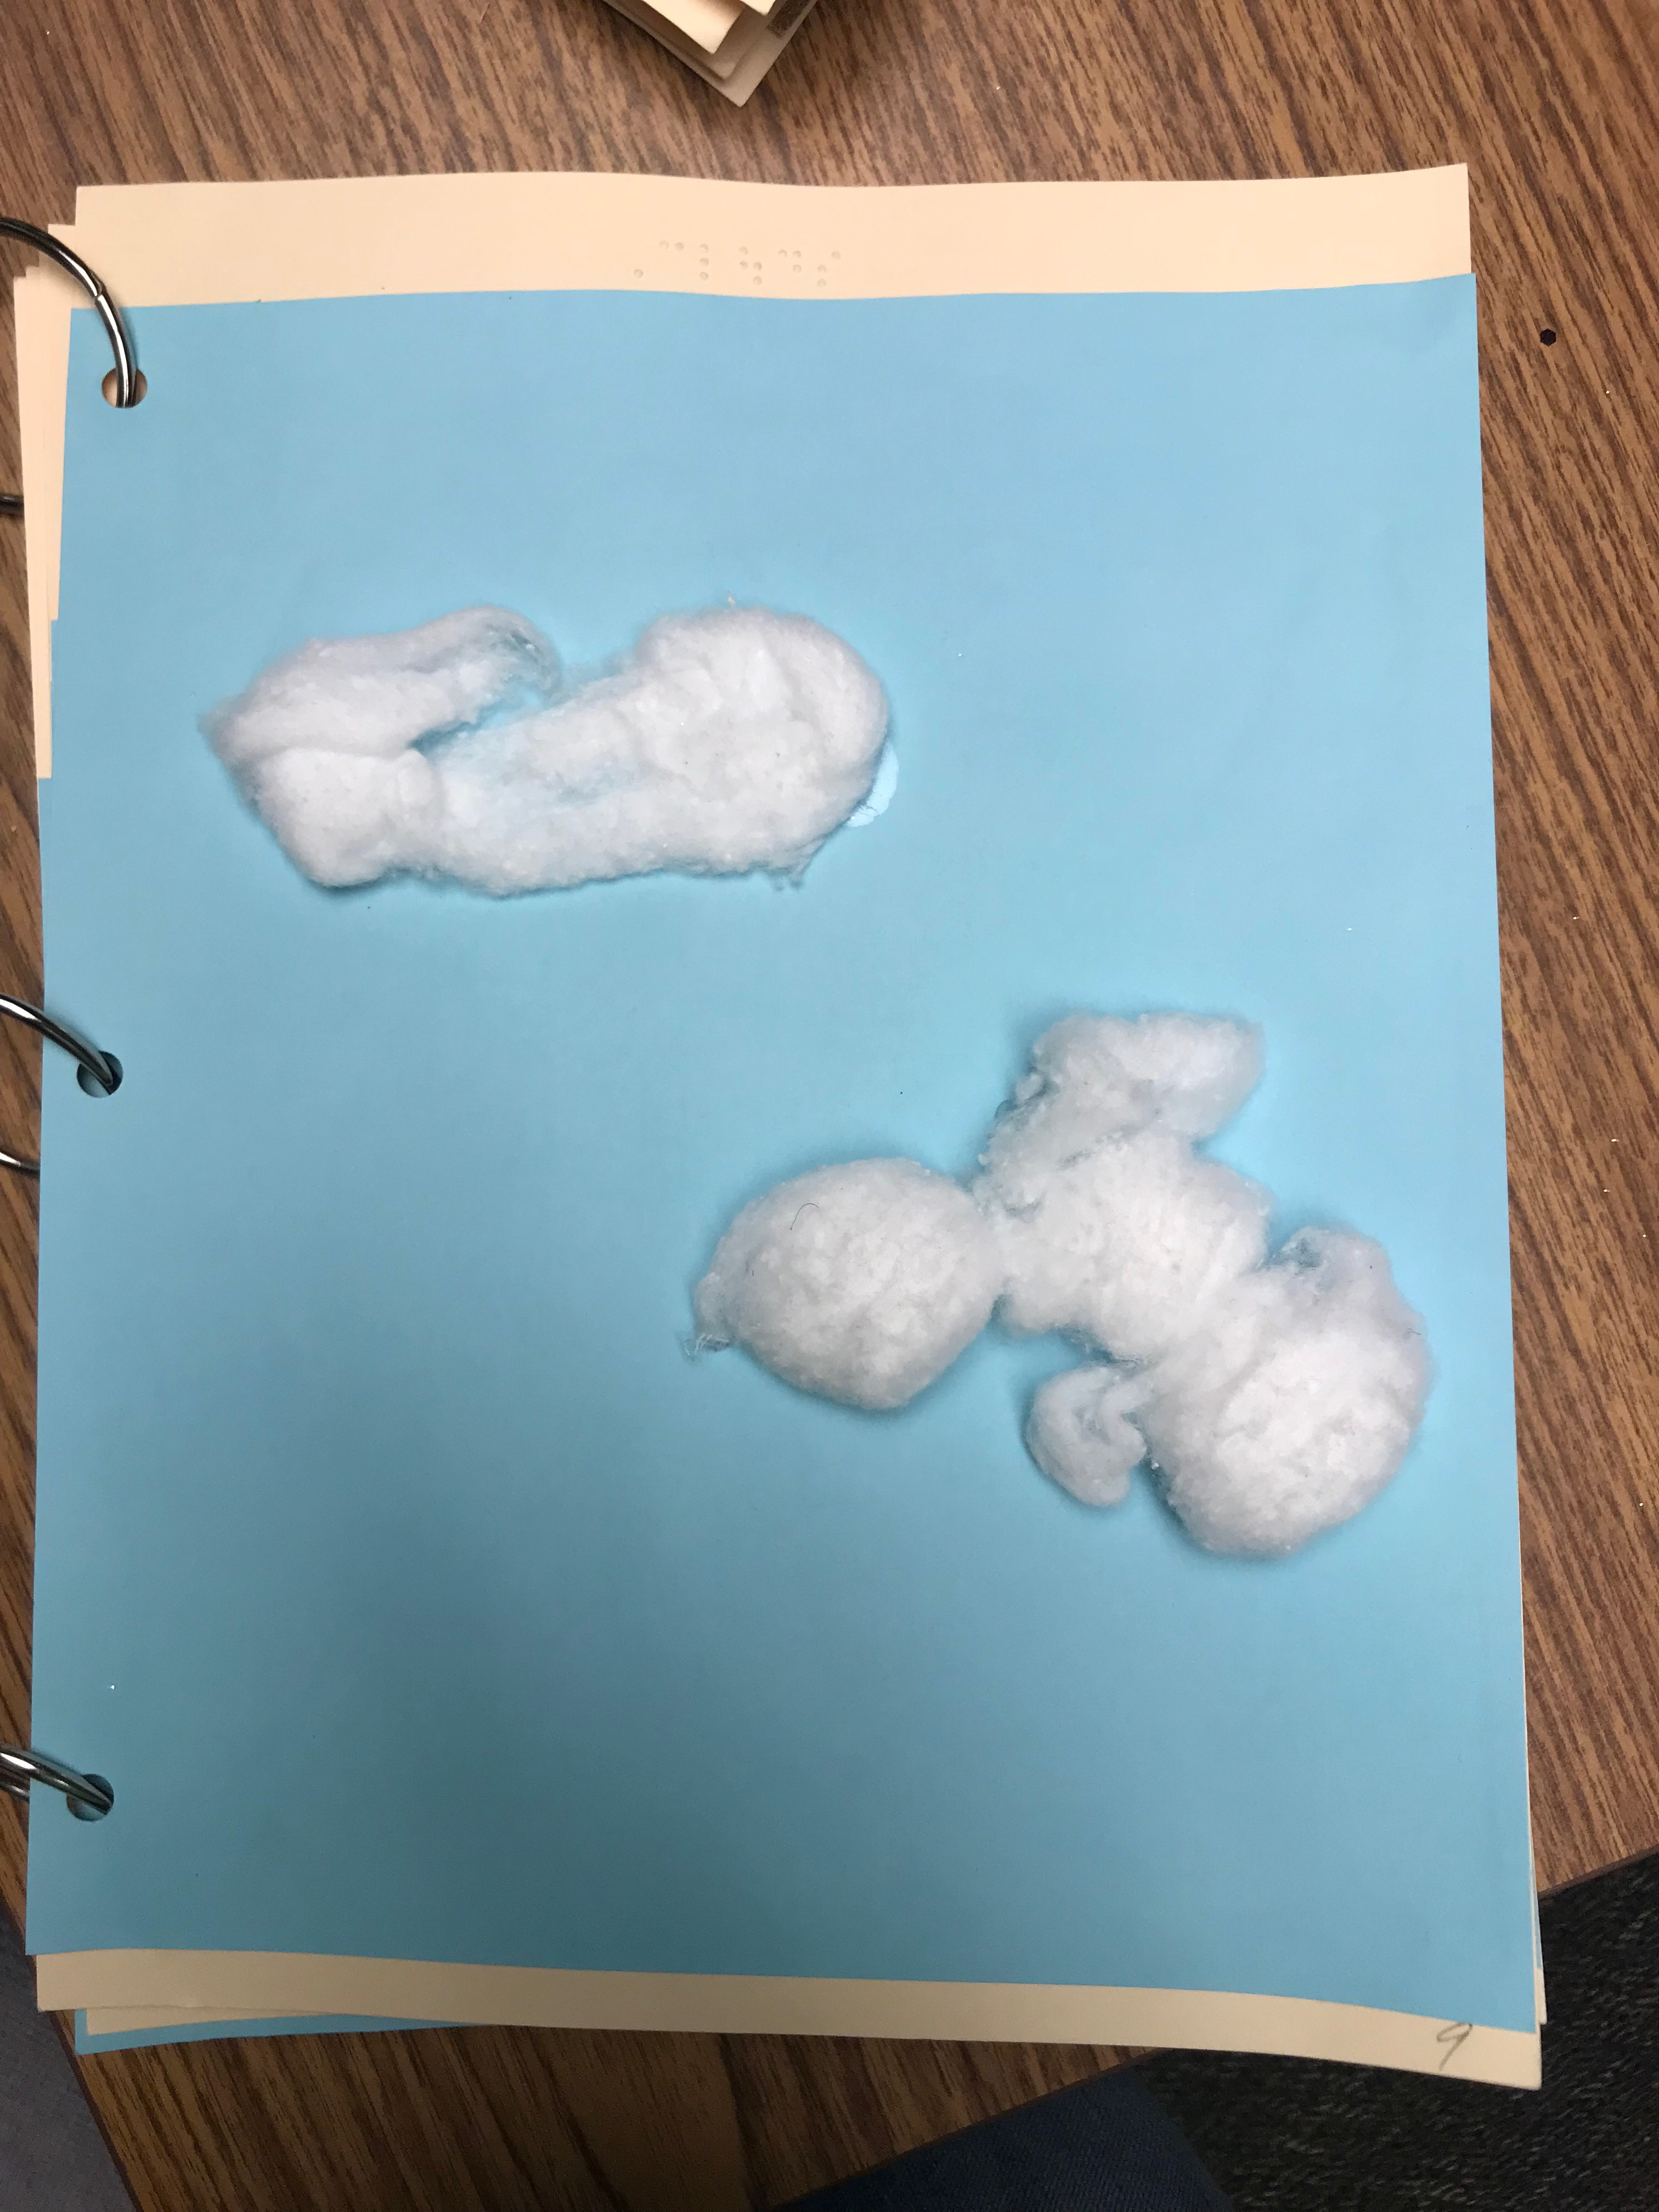 Photo of Cloud Title page with the brailled text 'Clouds' and cotton balls representing the clouds.